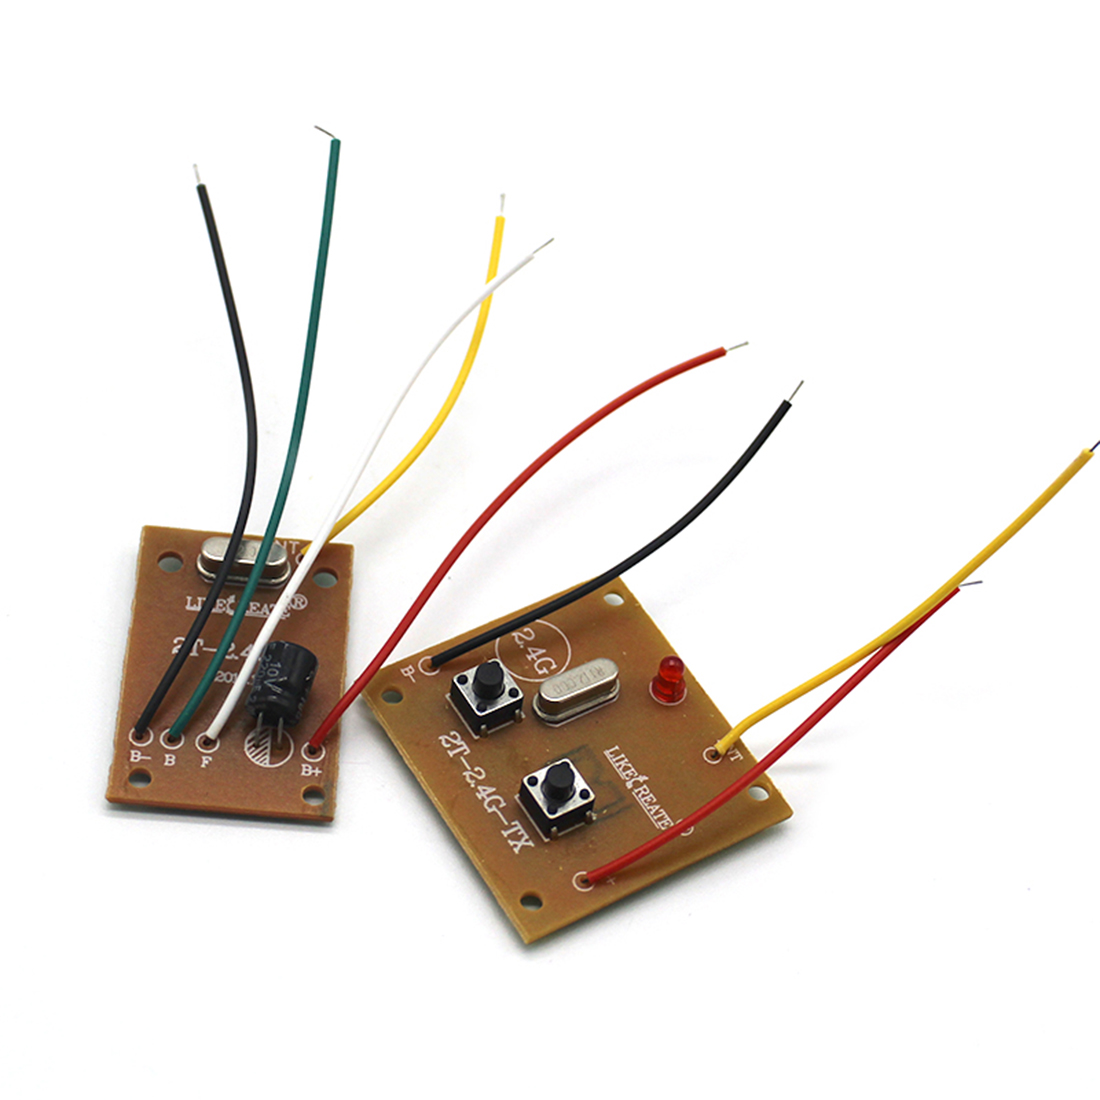 2.4G 2CH Remote Transmitter <font><b>Receiver</b></font> <font><b>Board</b></font> with Antenna for DIY <font><b>RC</b></font> <font><b>Car</b></font> Boat Accessories image